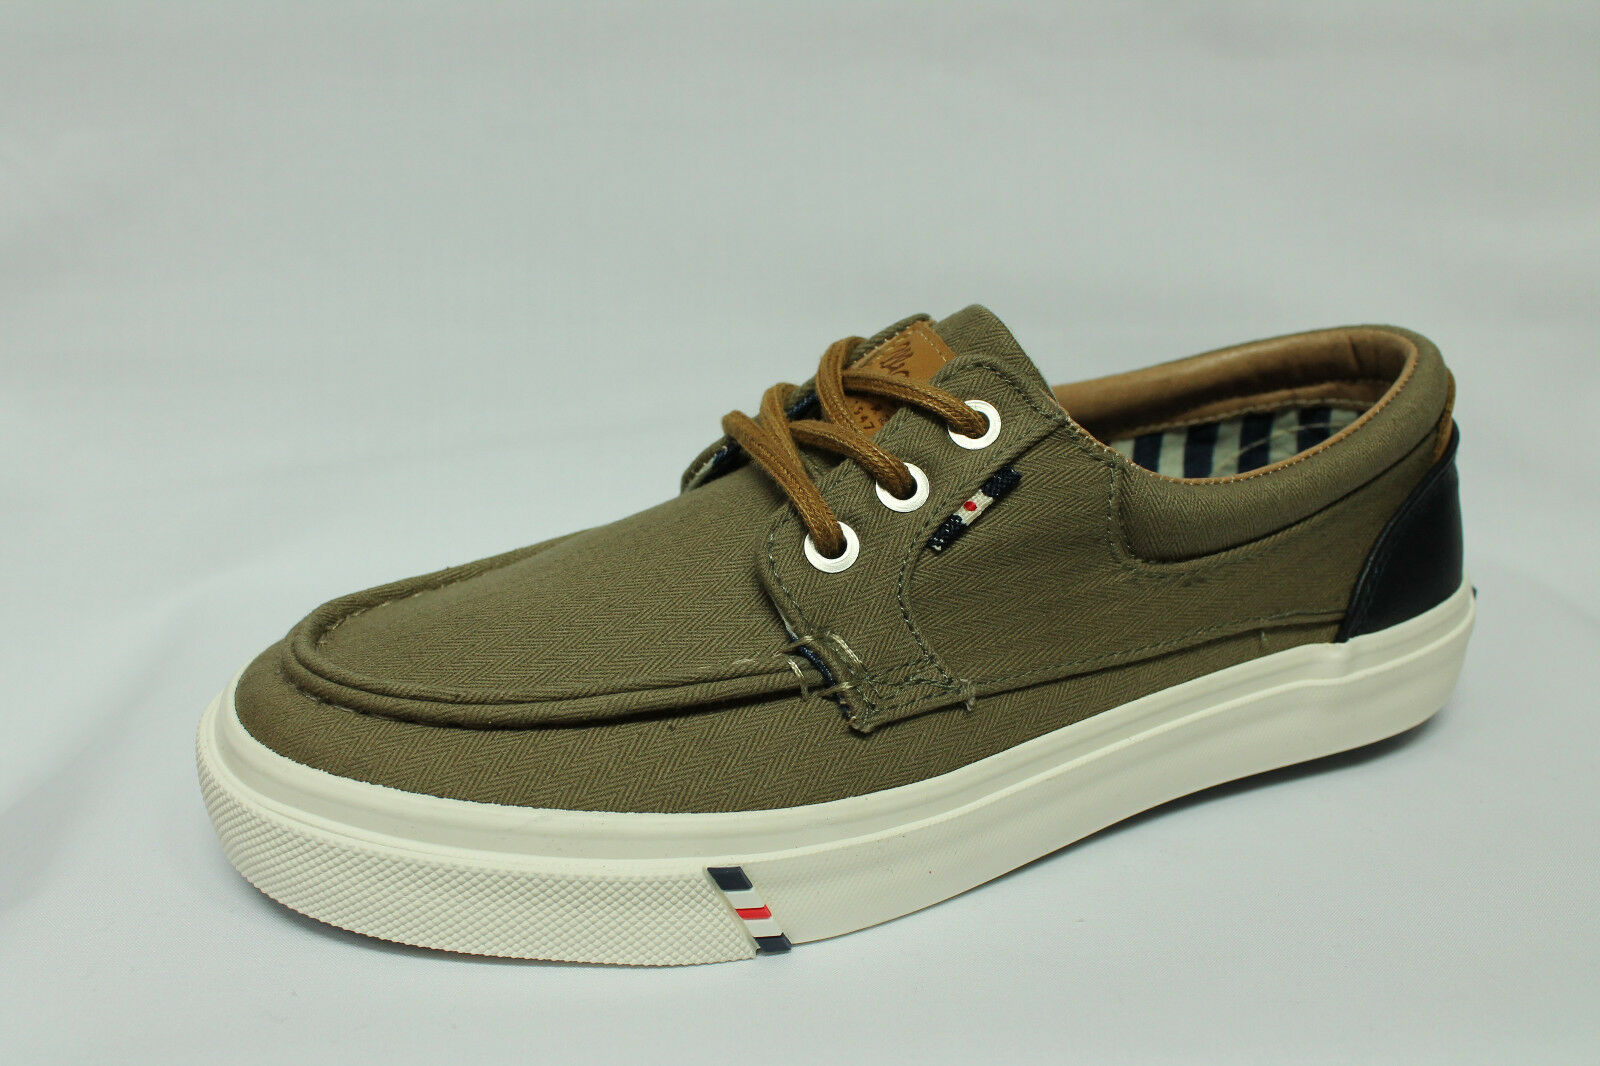 Sneakers Wrangler Icon Moc green Memory Foam tipo Vans o Sperry list -20%